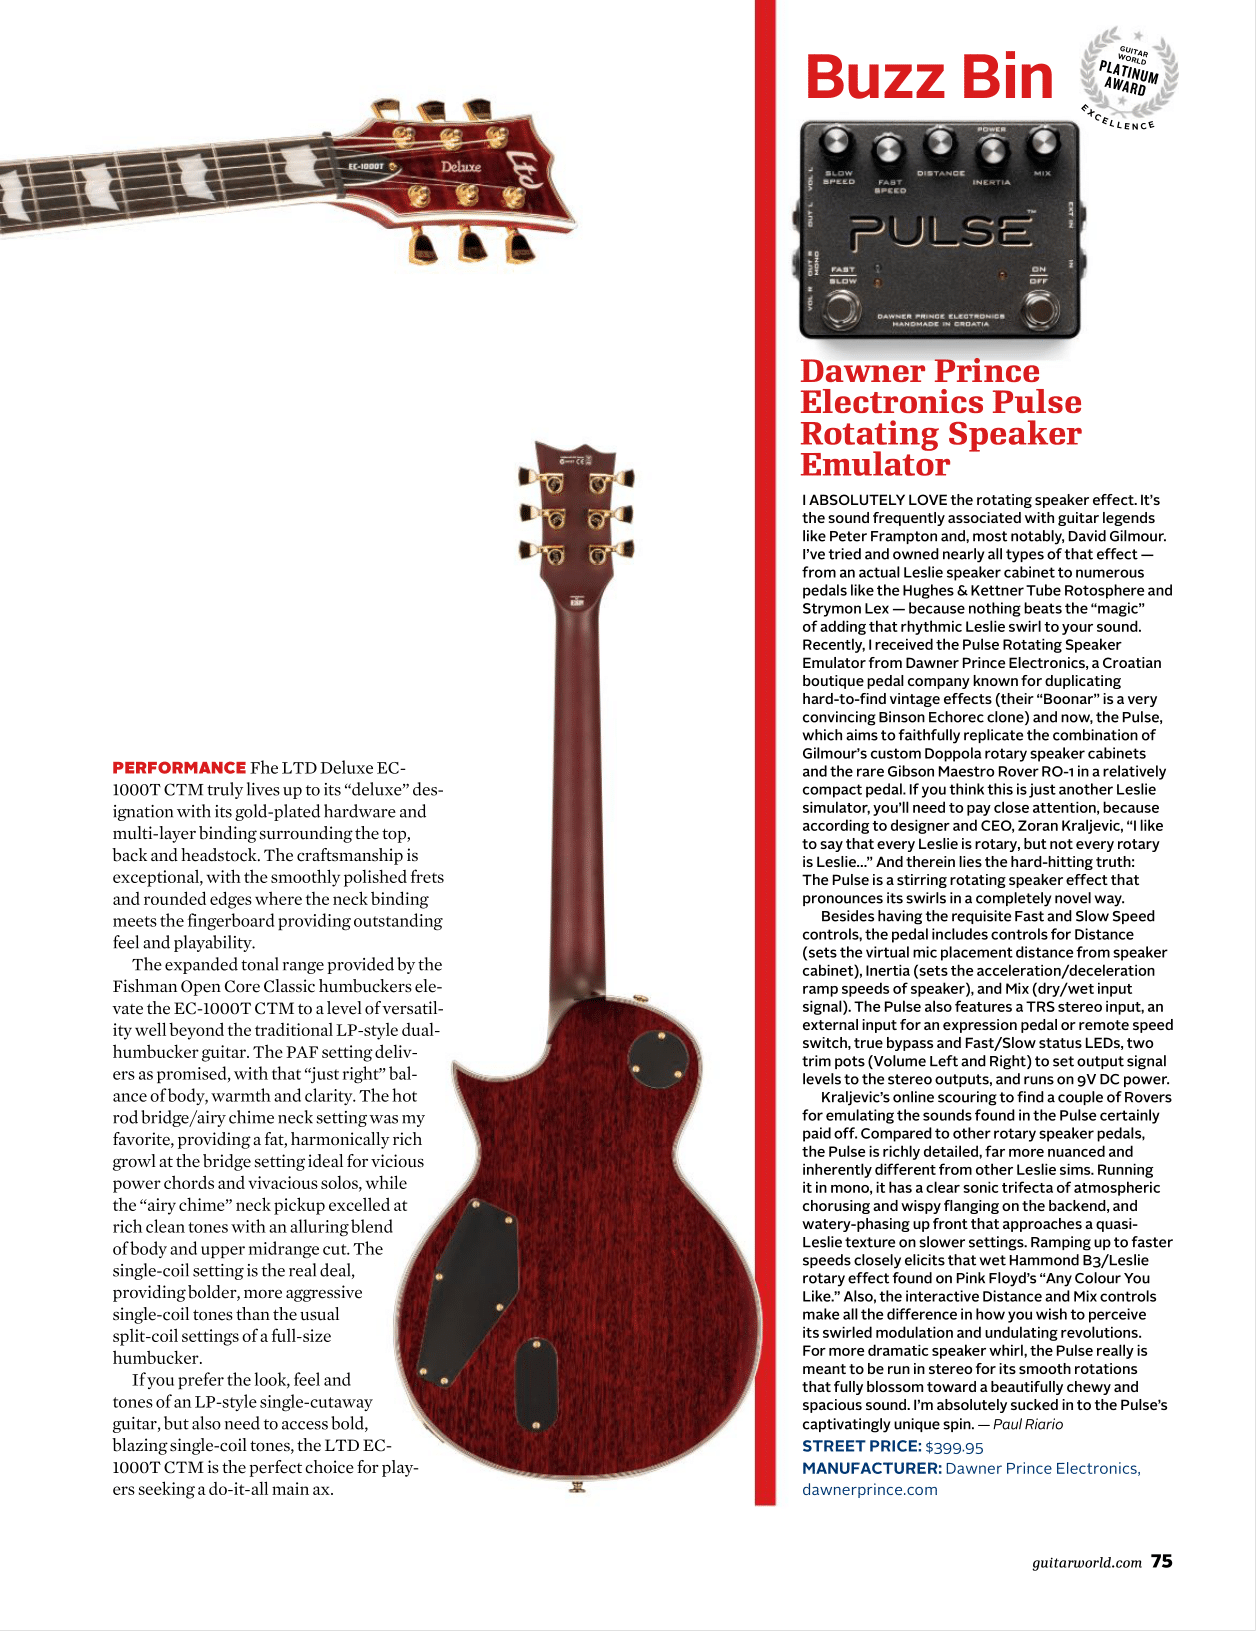 Guitar World Pulse review